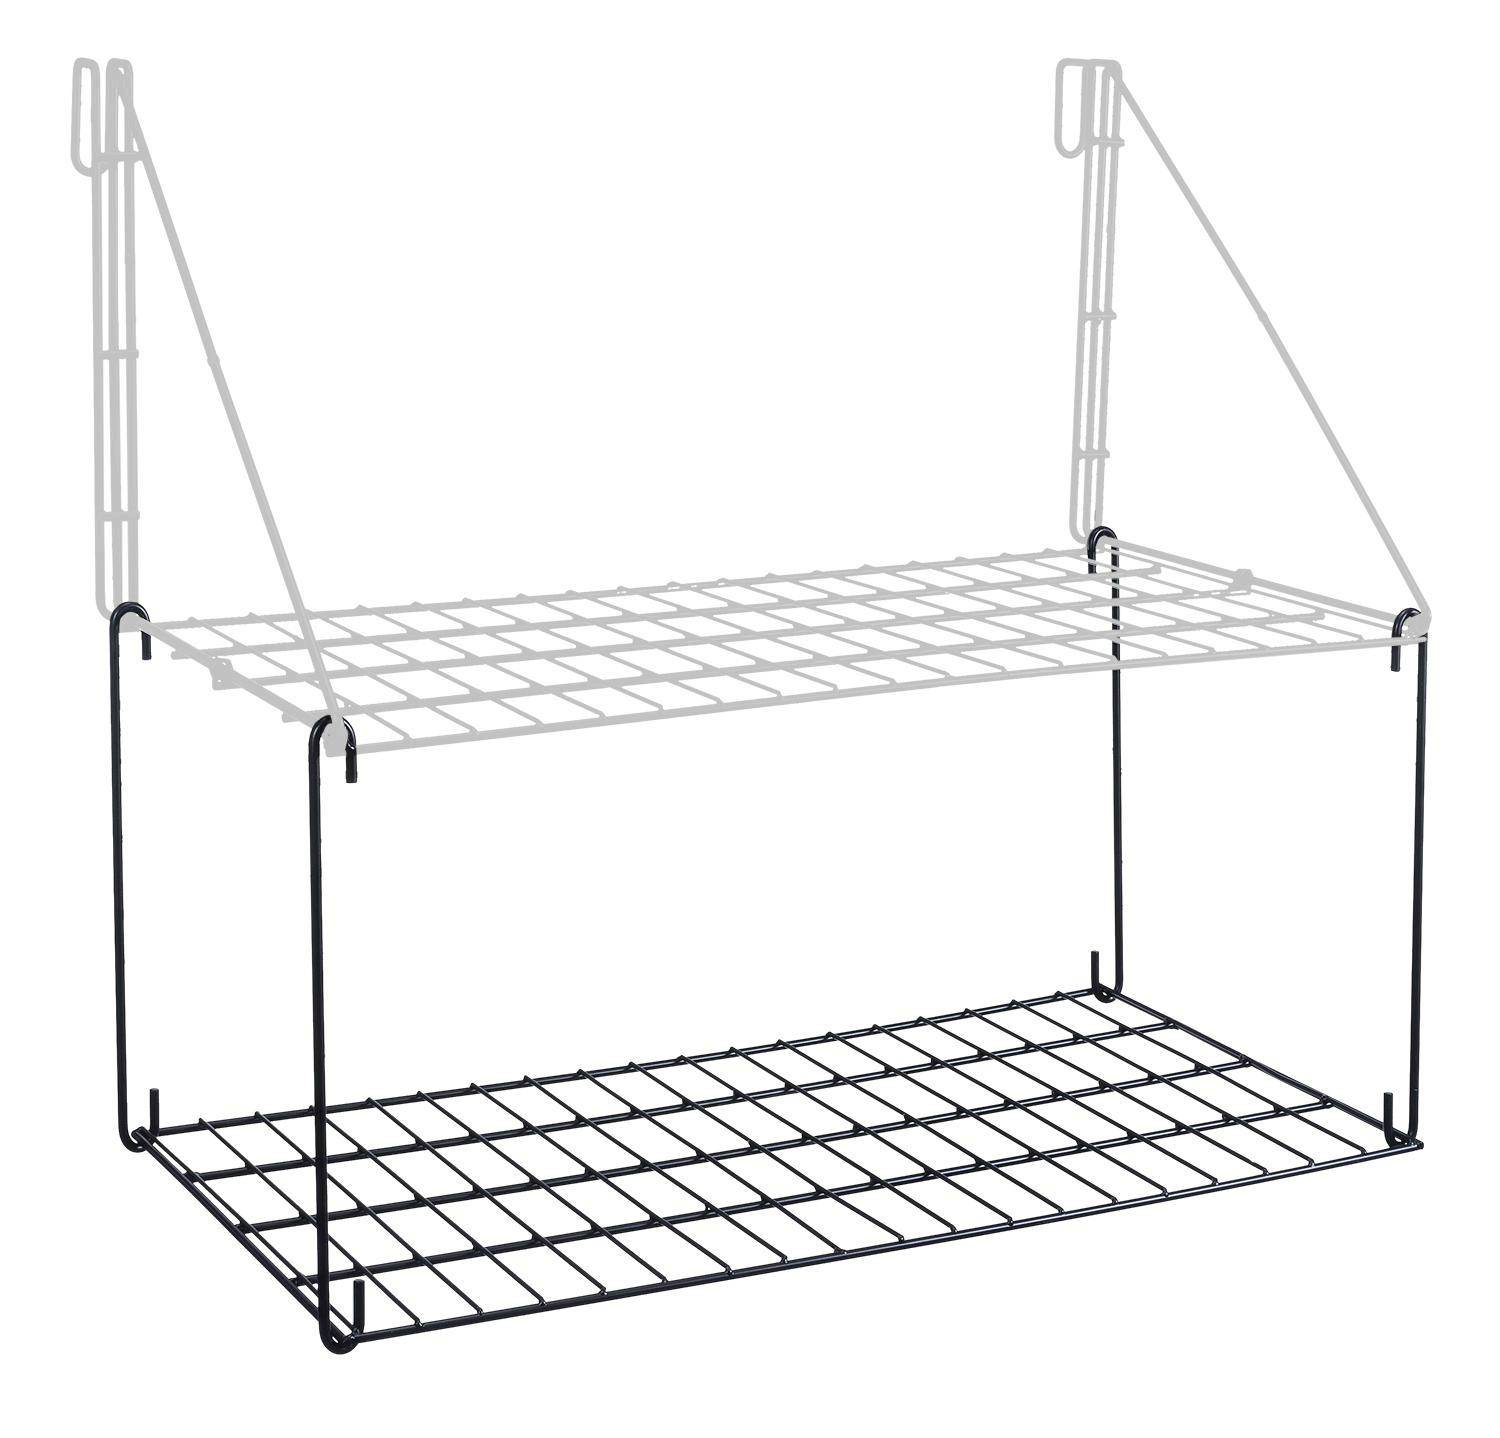 horse trailers in cicero Rodeo Horse Trailers tough 1 additional rack with hangers